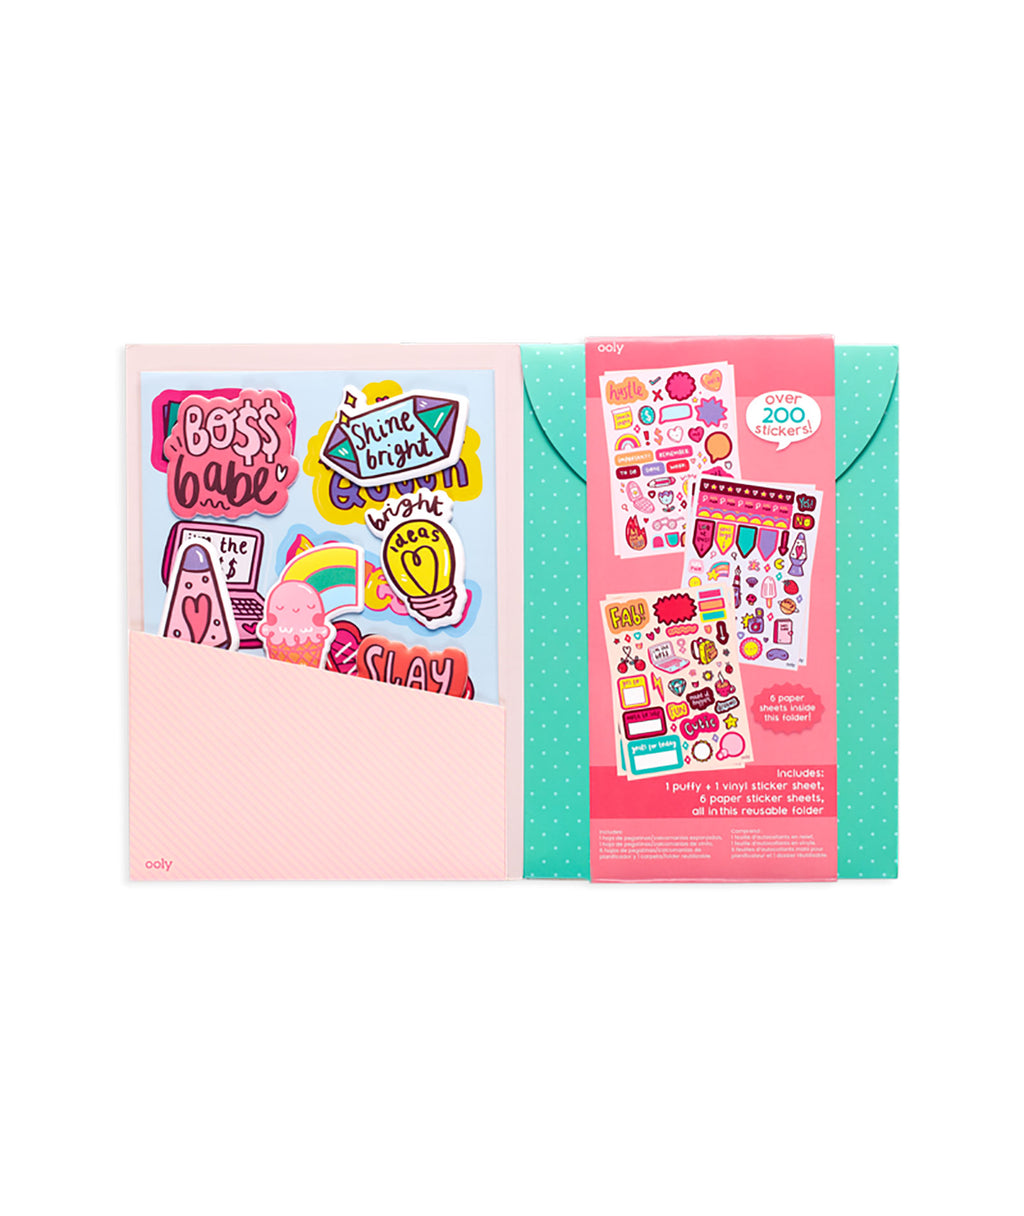 Sticker Stash - Girl Boss